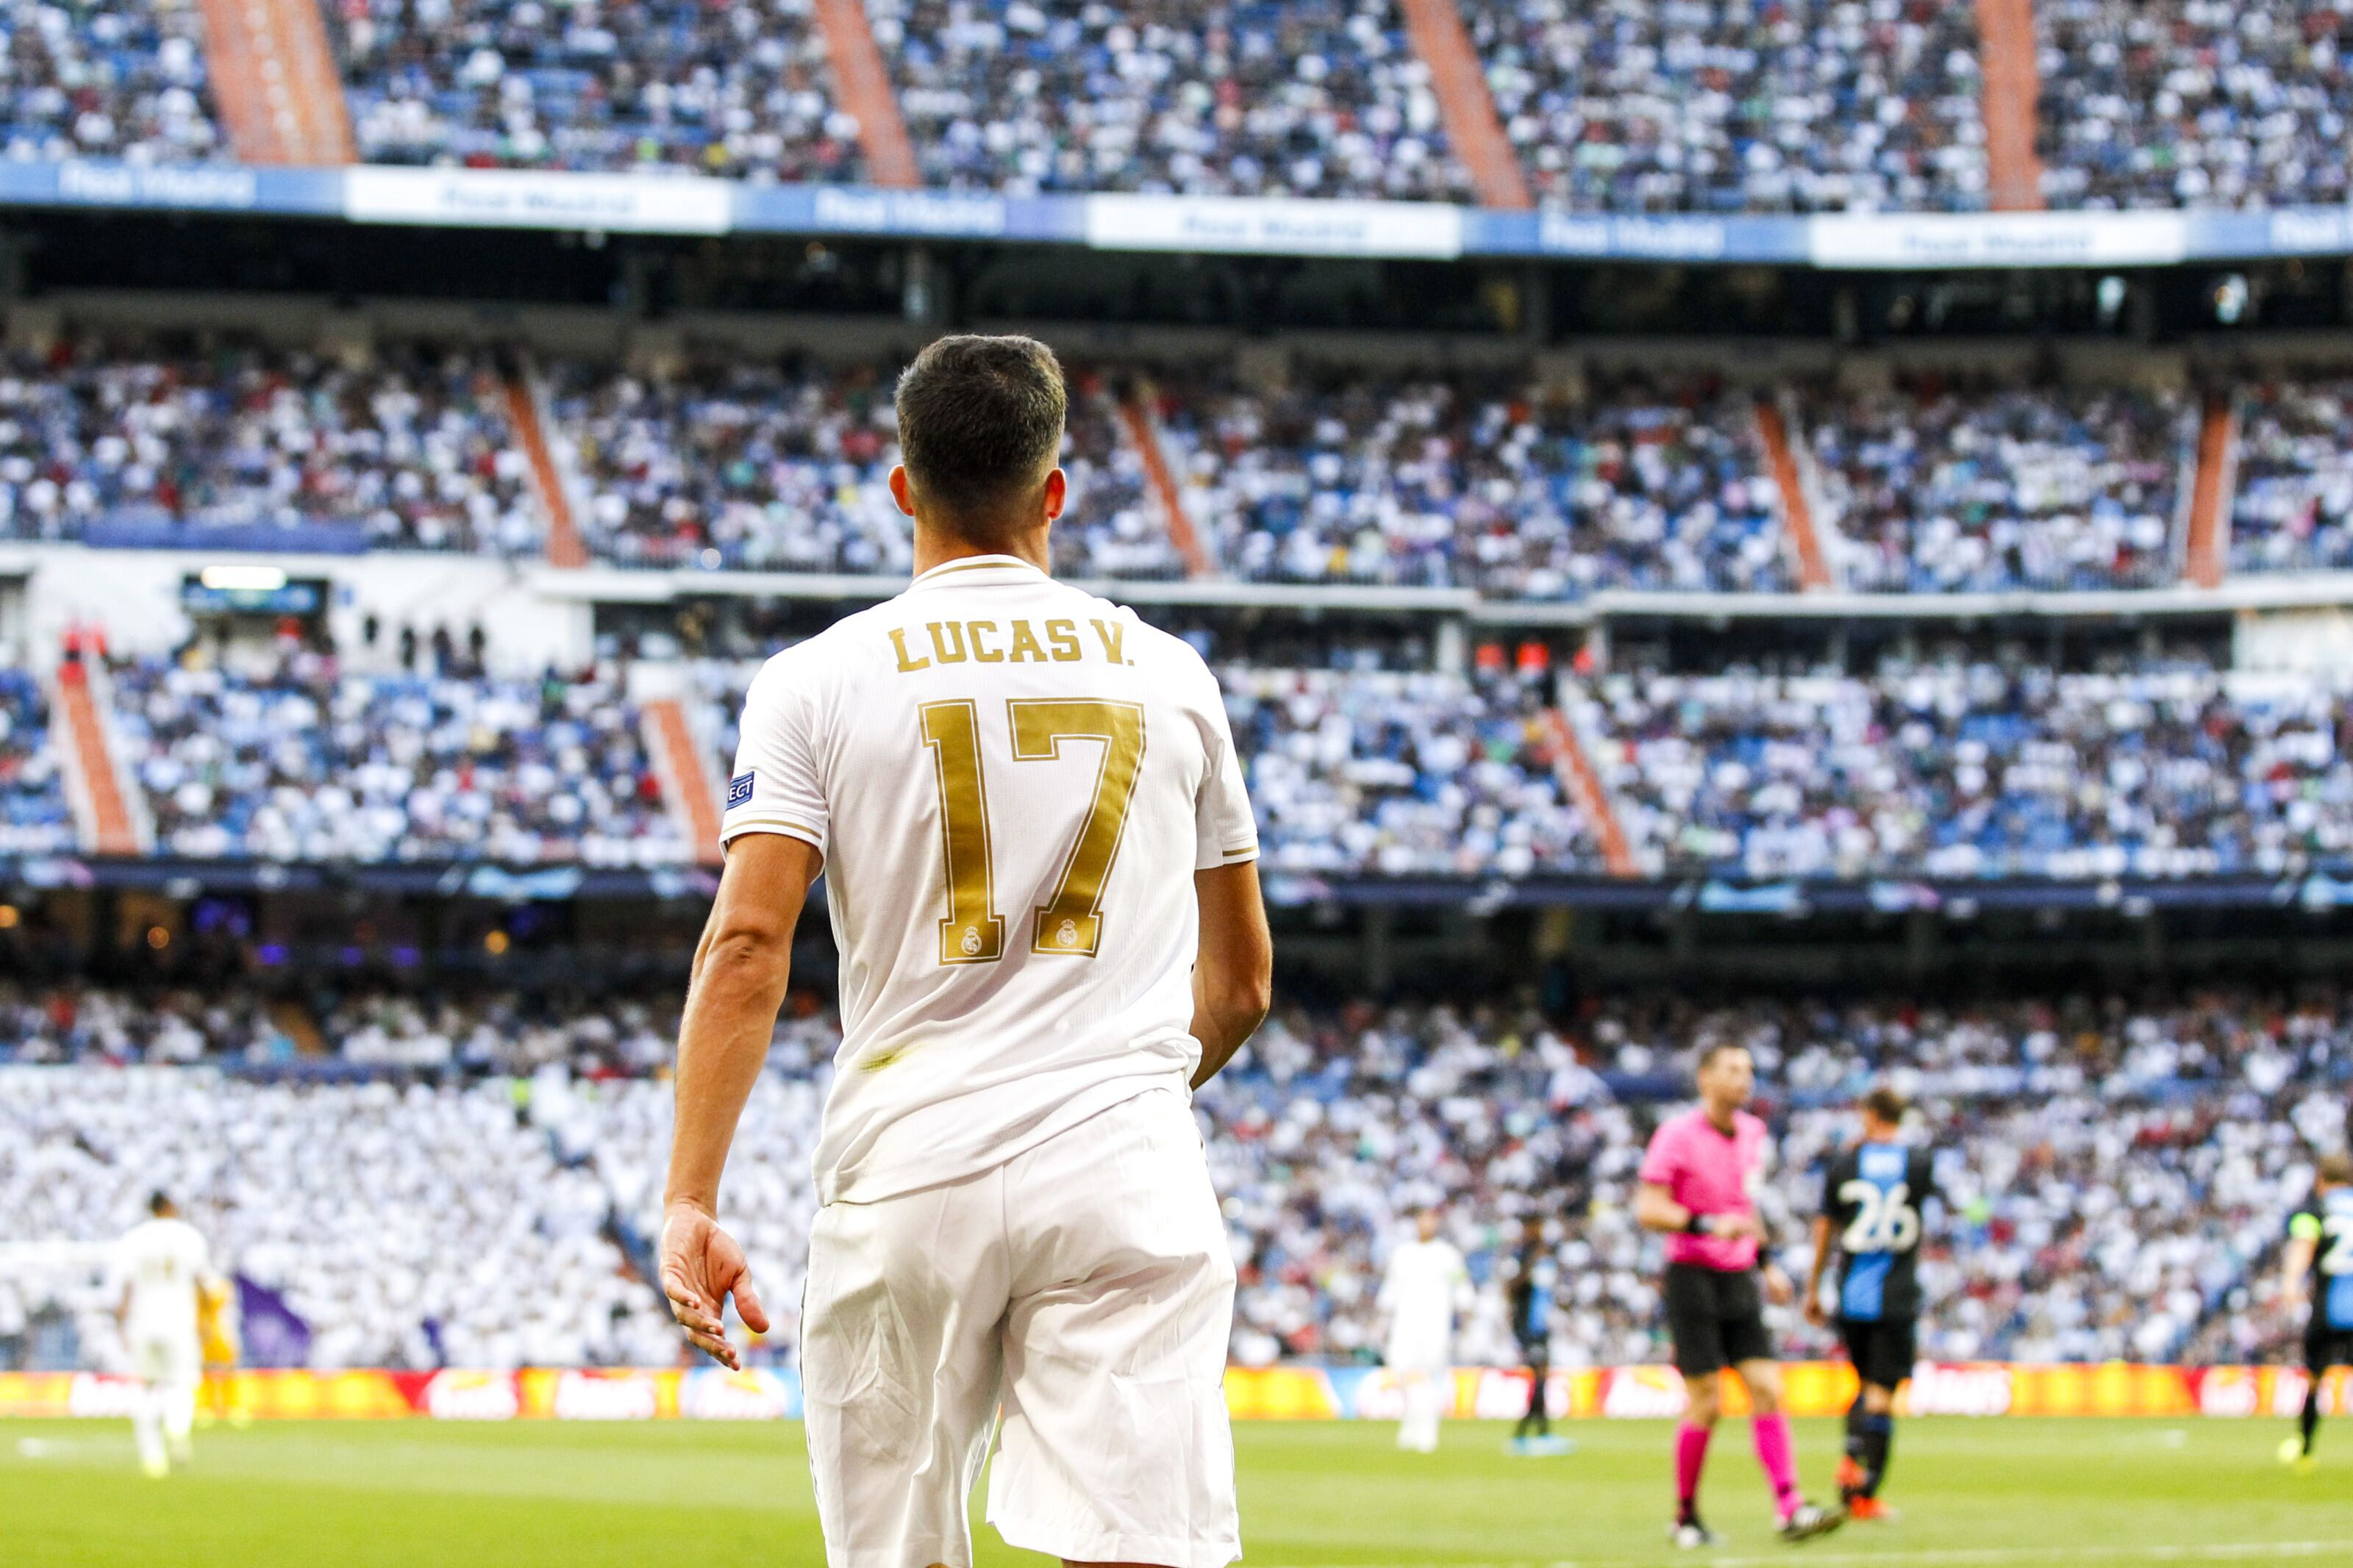 Does Lucas Vazquez still have a place in the Real Madrid squad?